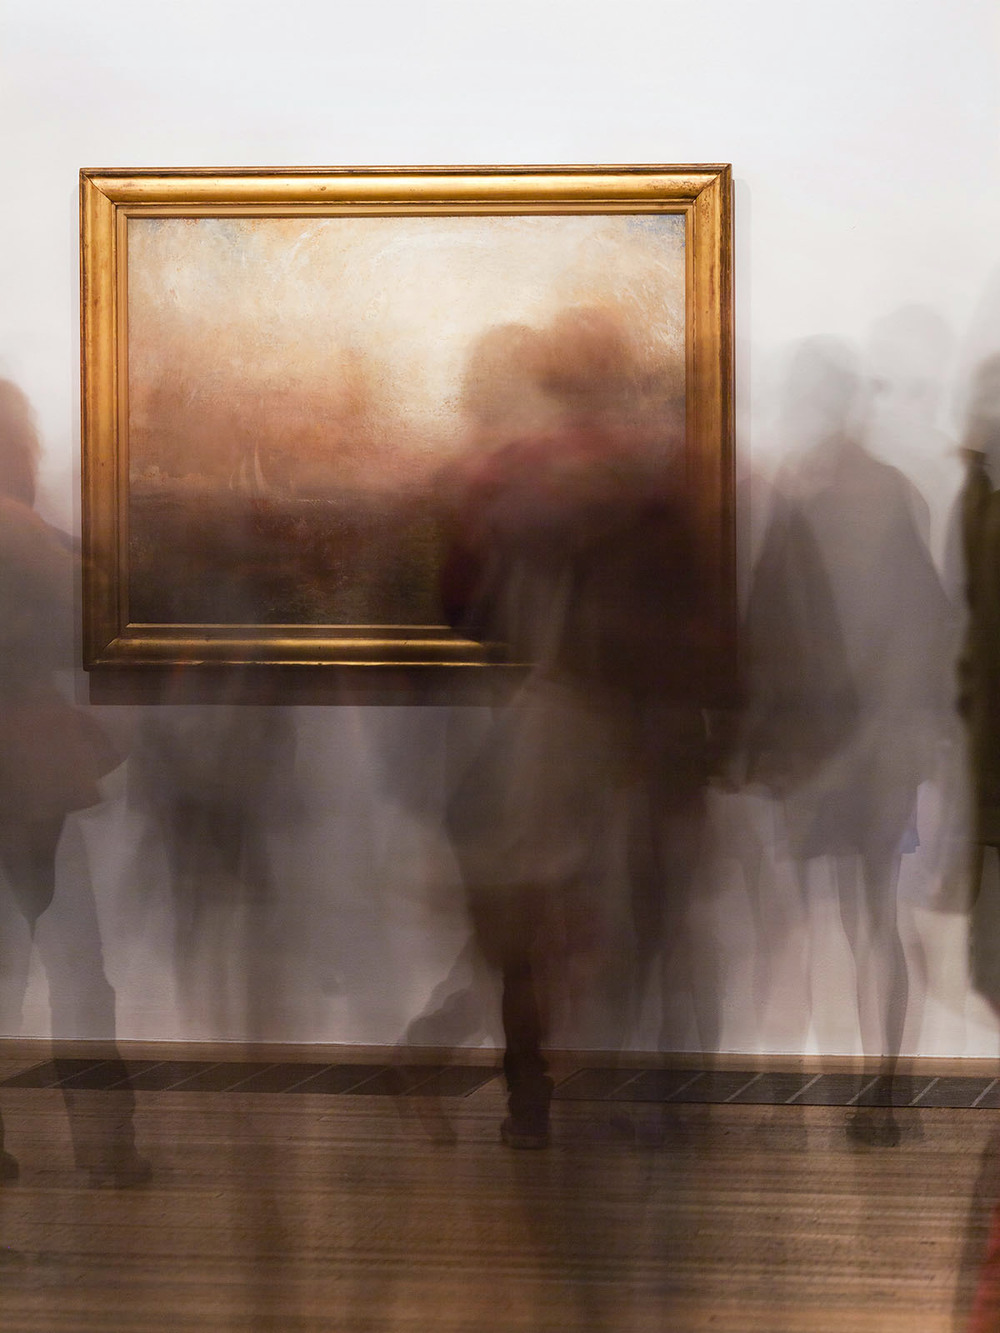 Turner, Tate Modern, London (2012)